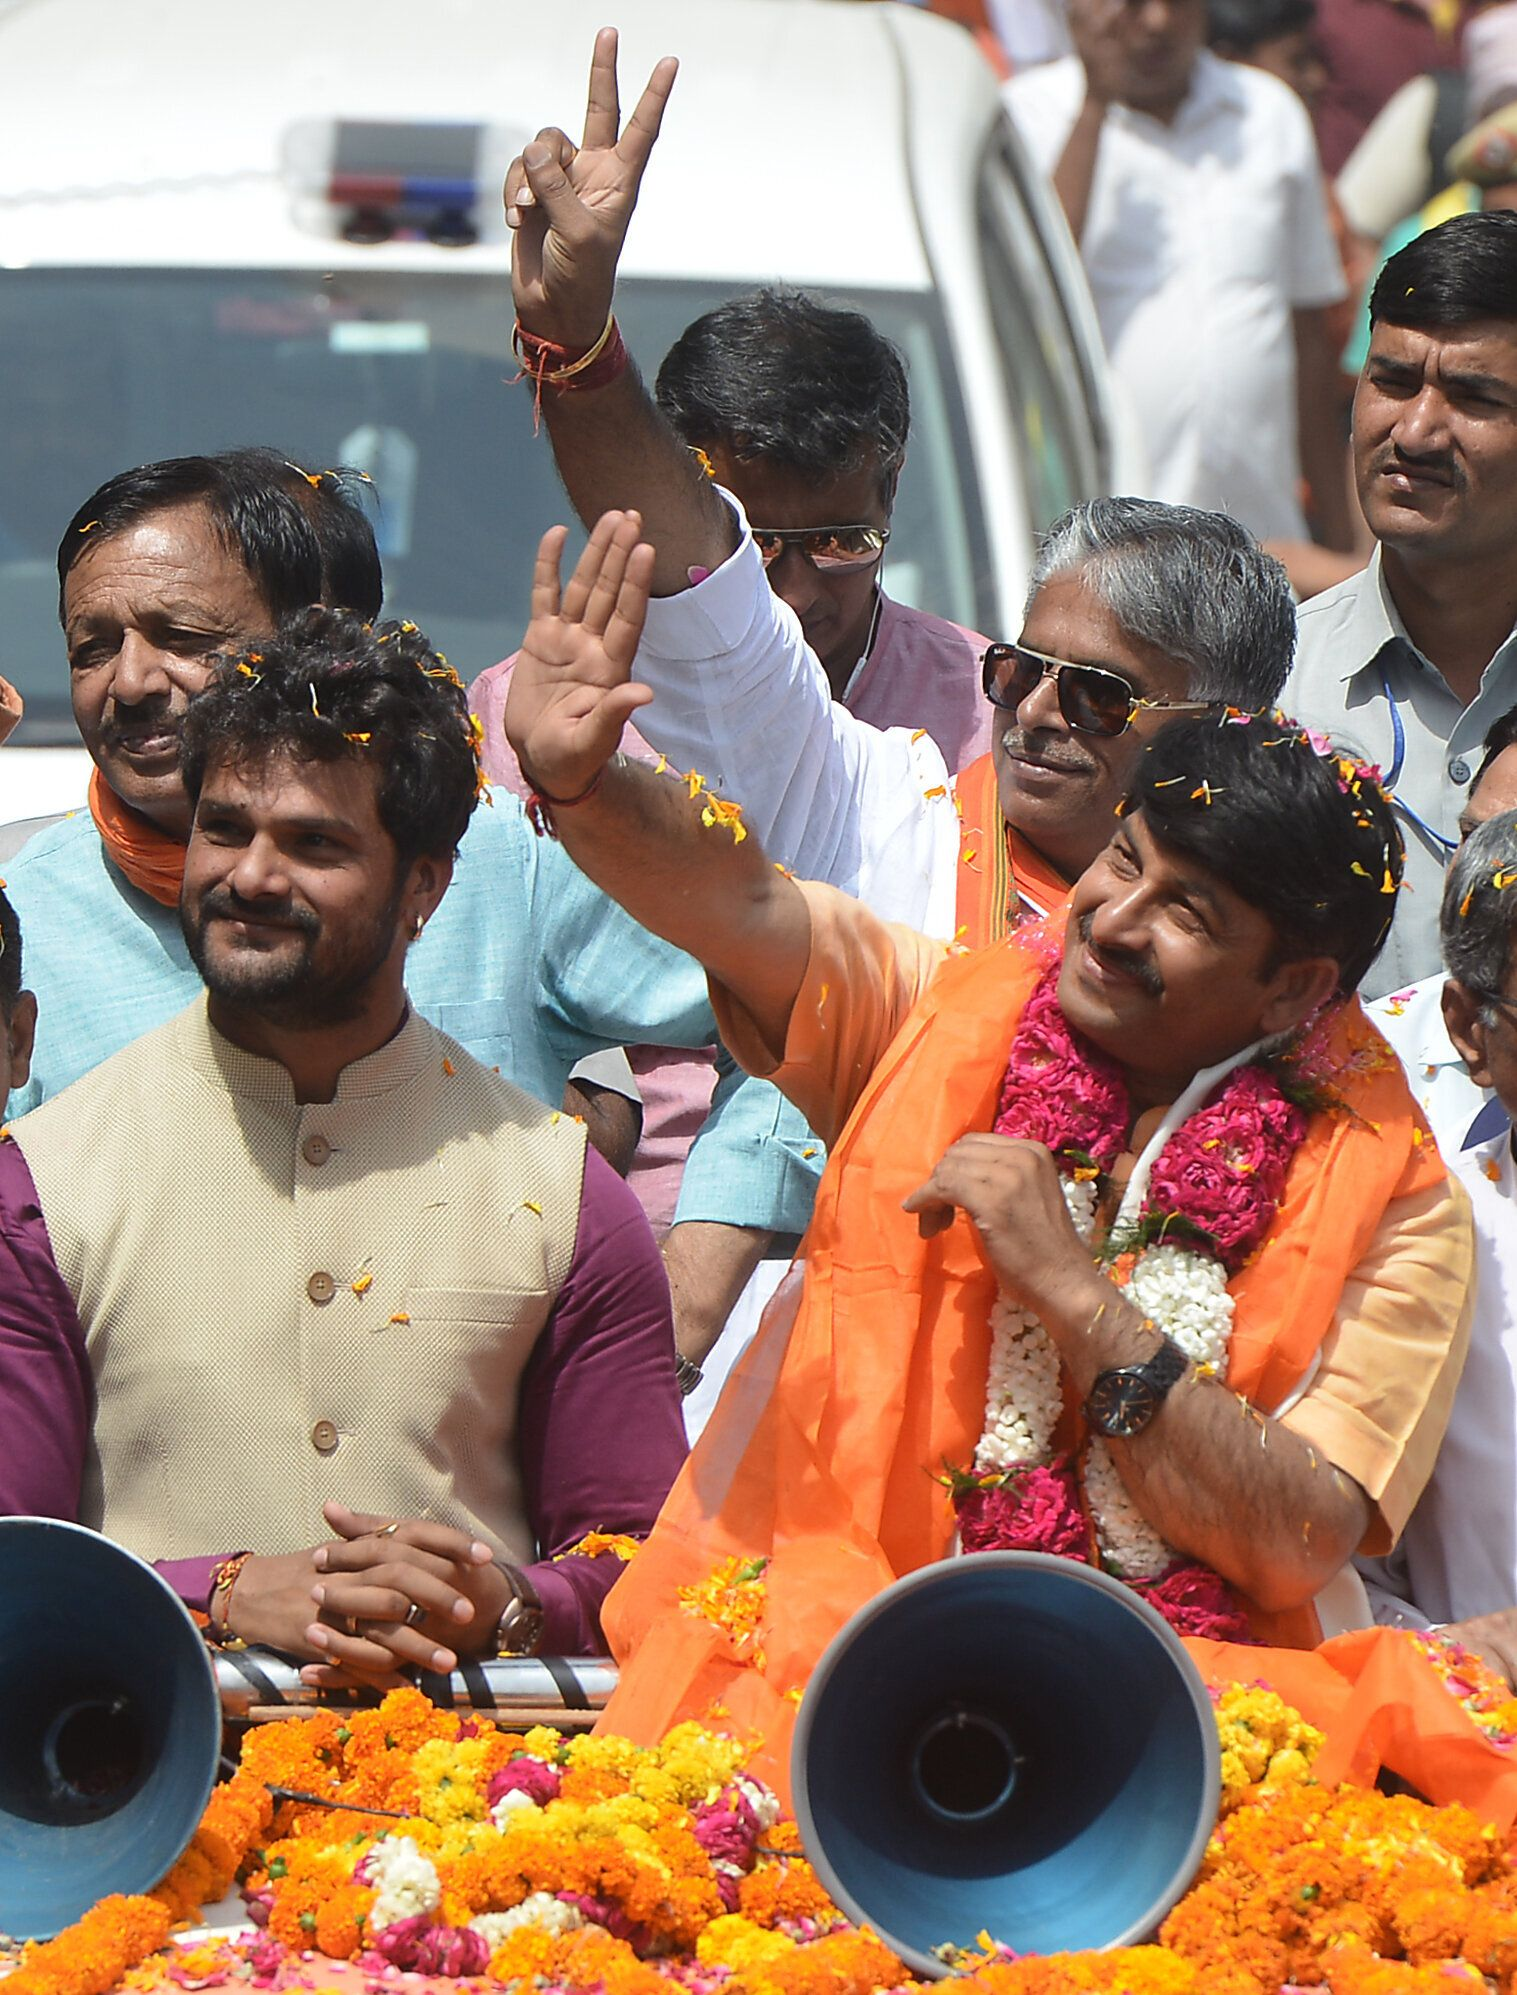 Manoj Tiwari Wins North East Delhi By Over 3 Lakh